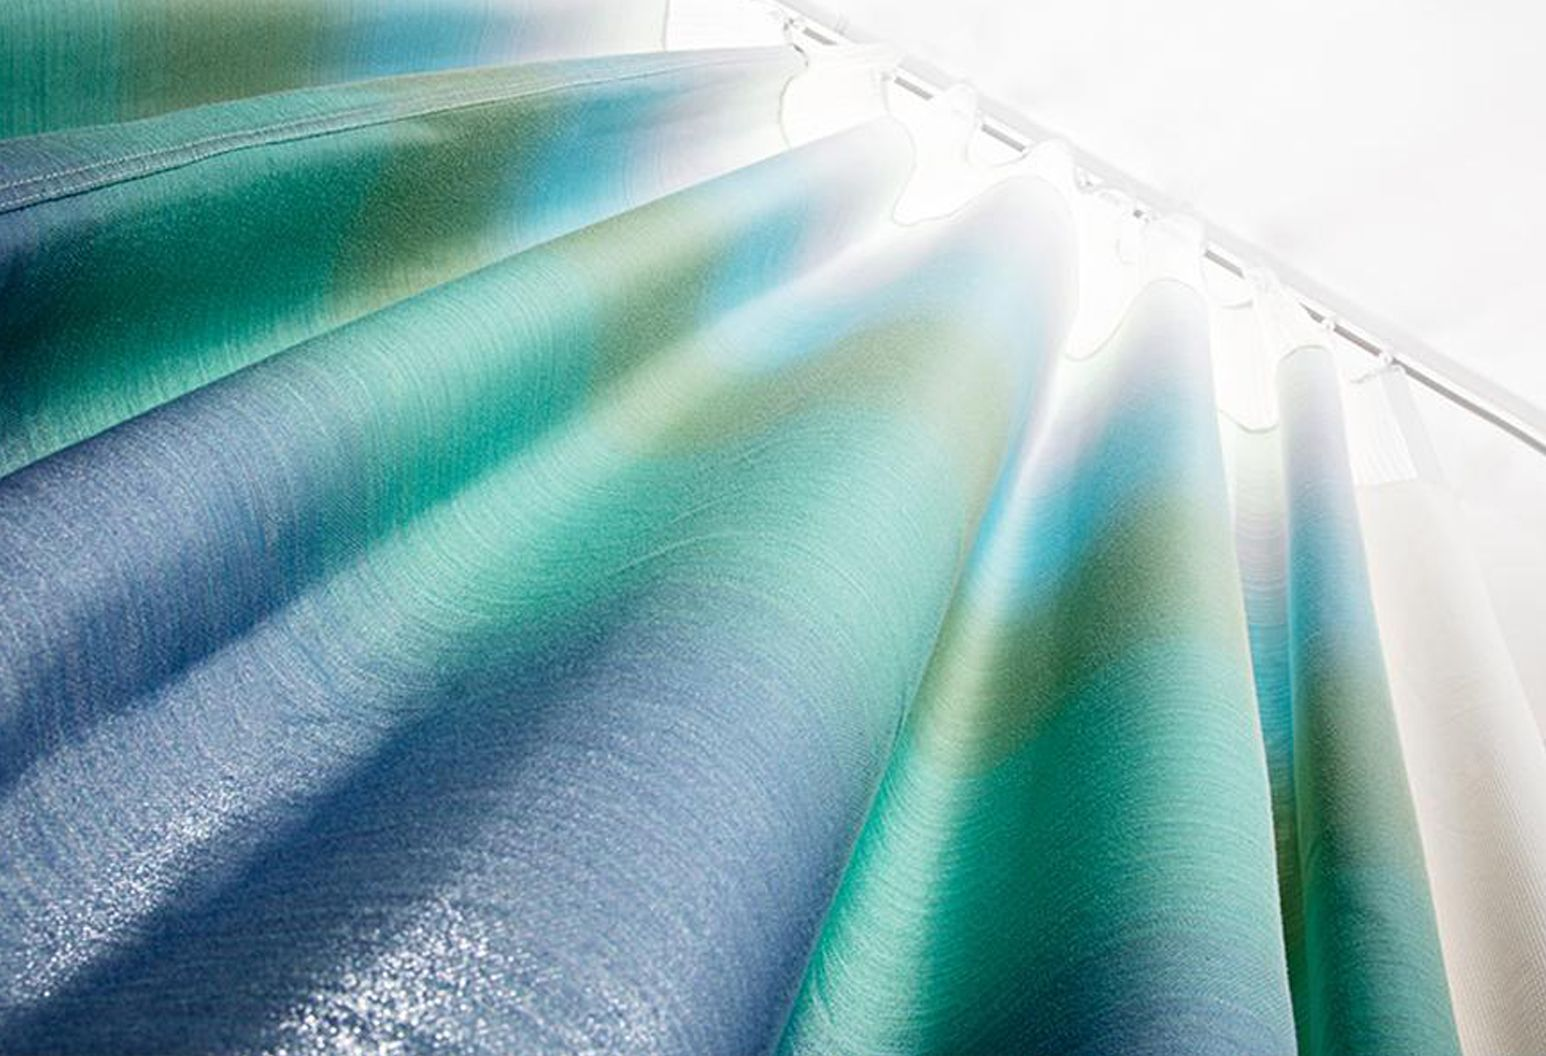 Image of a blue green hospital curtain. Viewer is looking up at the curtain and a light is shining down from the top.